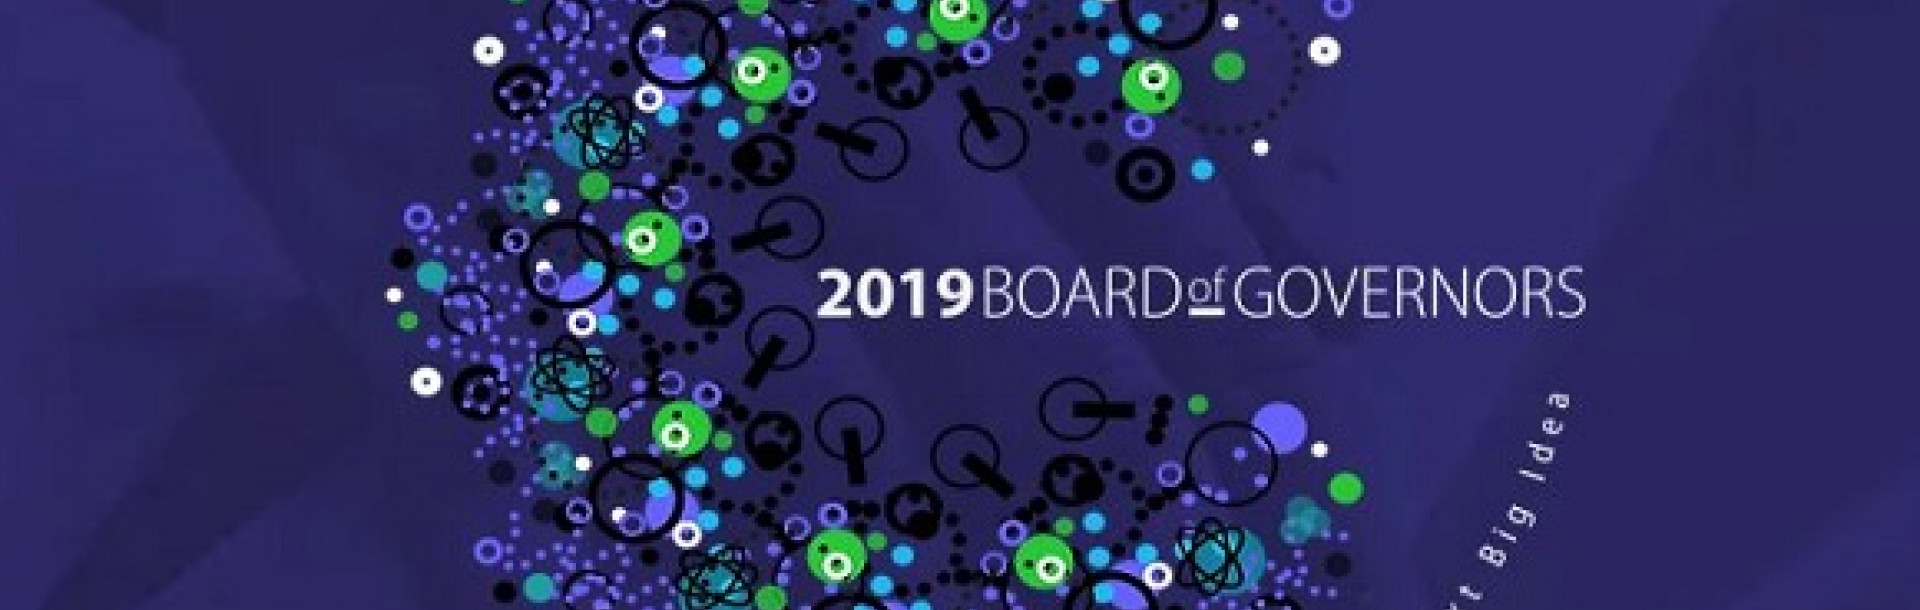 2019Board of Governors